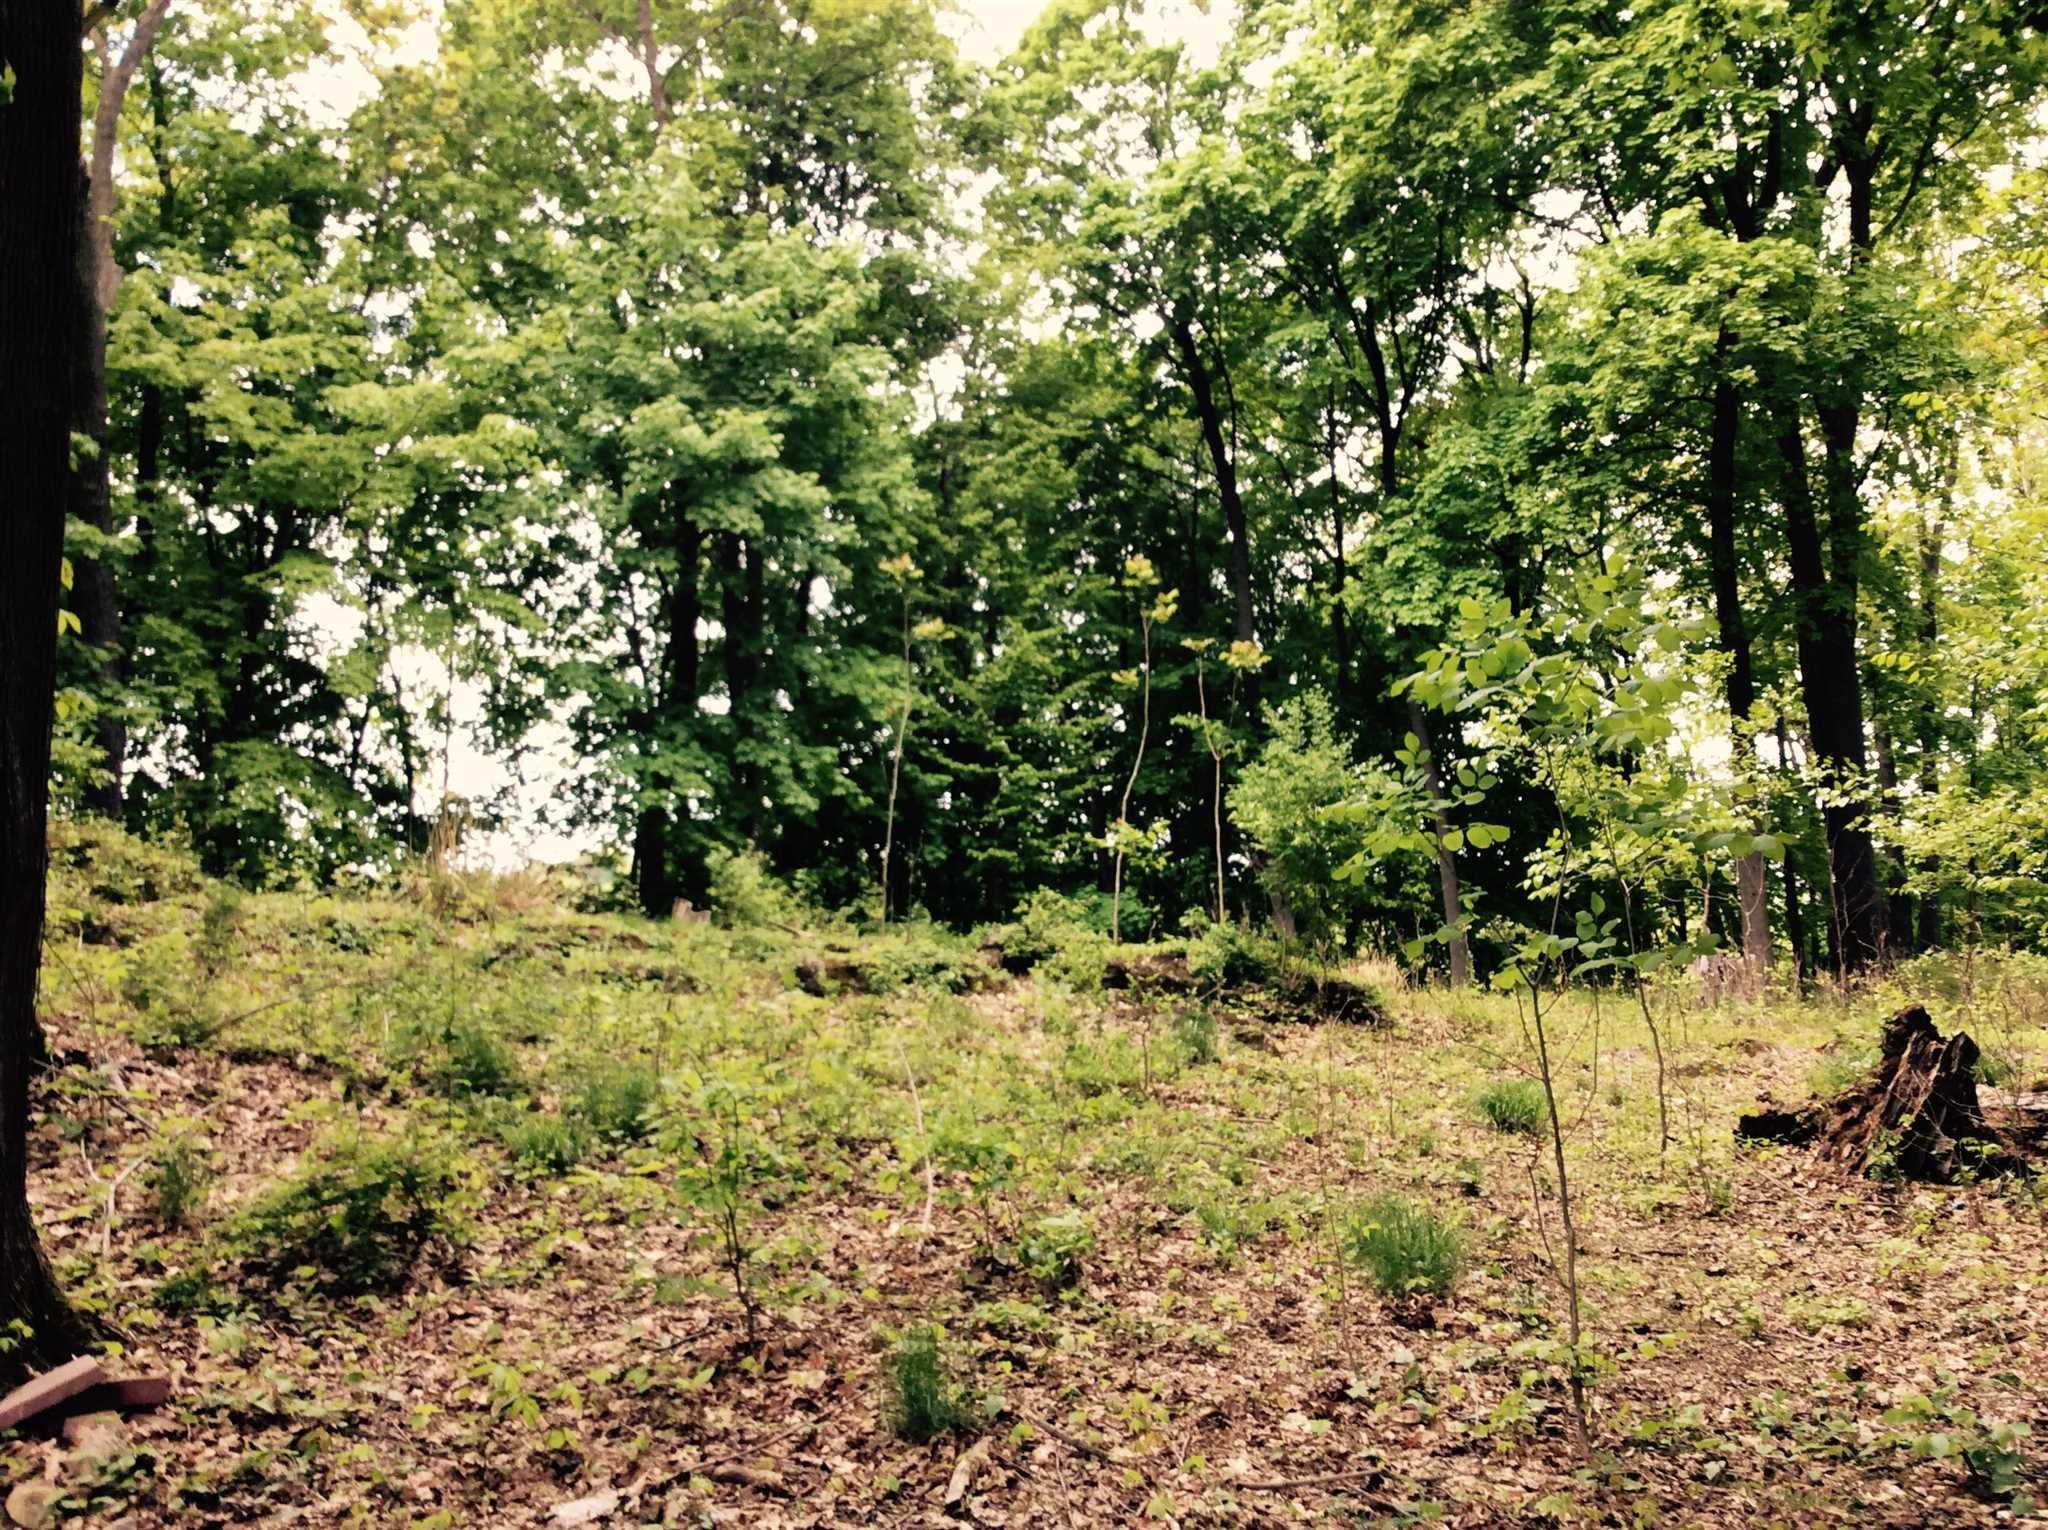 Land for Sale at 15 RYANS Avenue 15 RYANS Avenue Beacon, New York 12508 United States